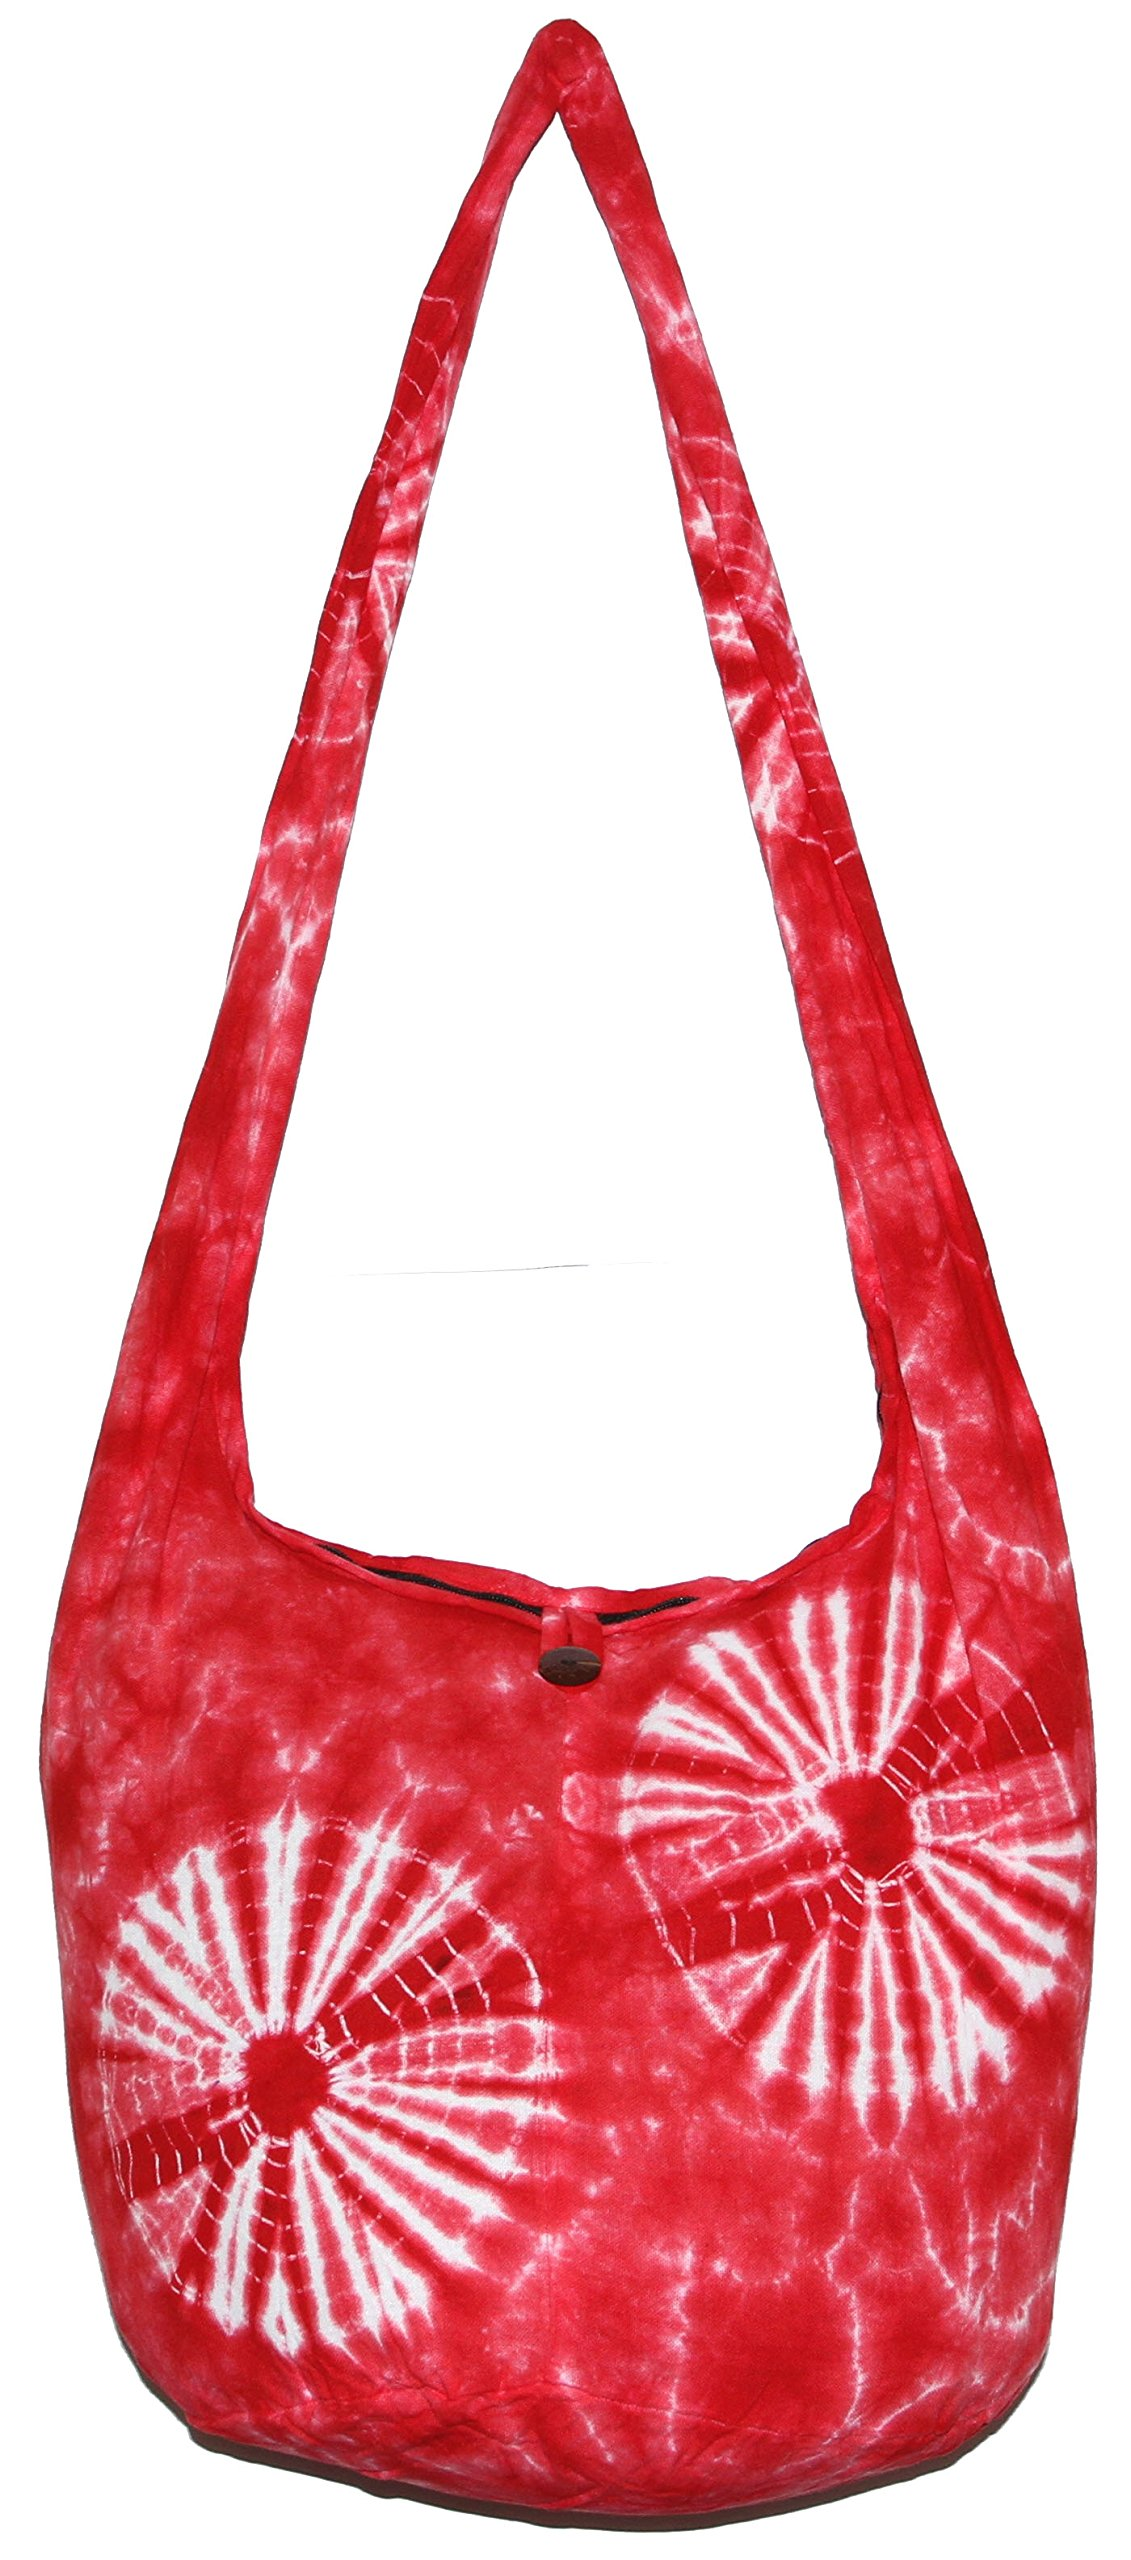 TIE DYE Bohemian Hipster Hobo Boho Hippie Crossbody Bag Purse 39'' 2 Stars (Red) by All Best Thing